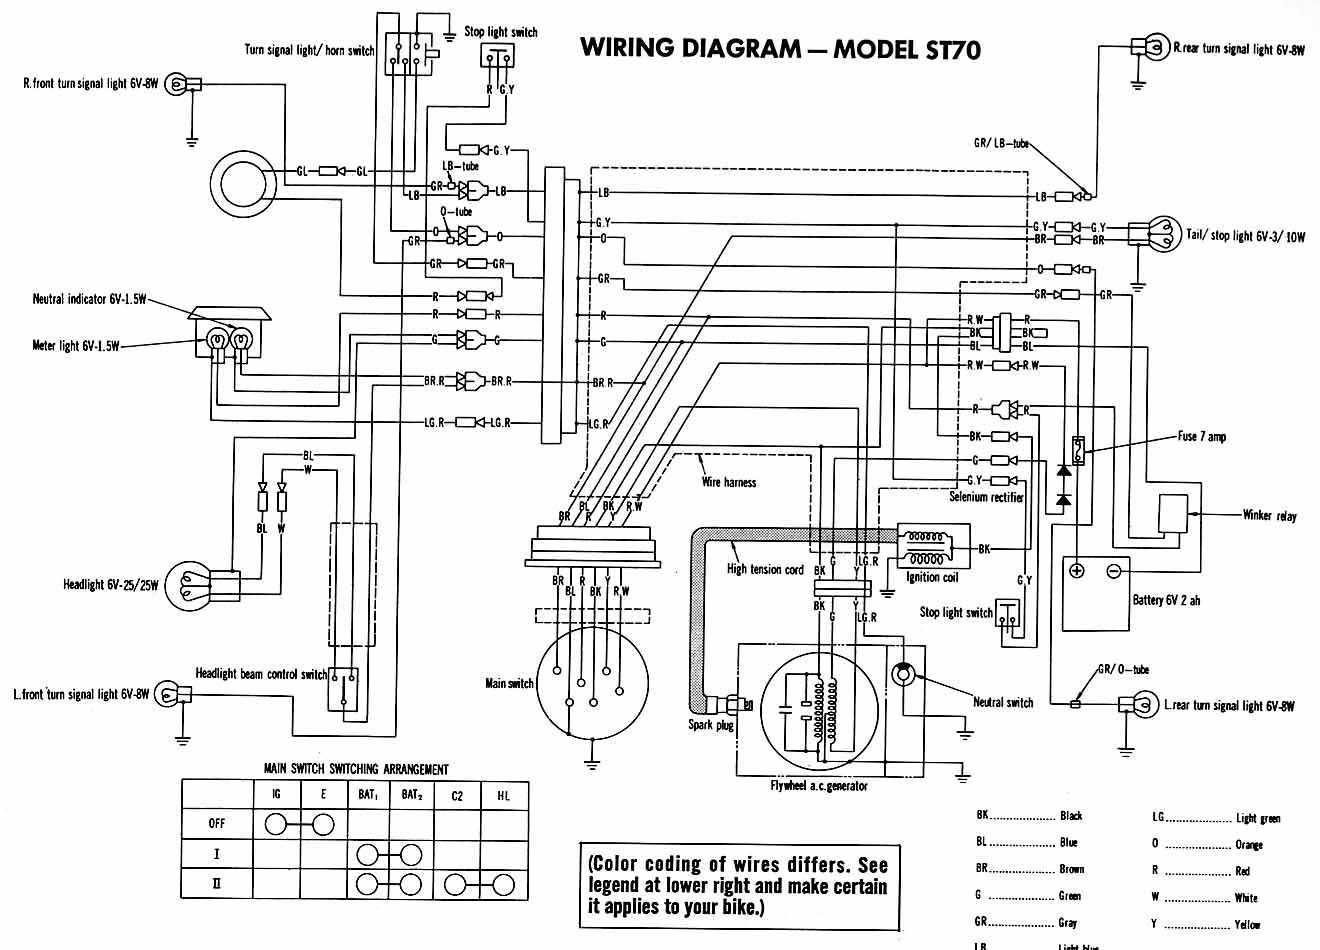 Wiring Diagram Of Honda Sl 100 Motorcycle Diagrams K Z 750 Chopper For Light Switch Xl600r Get Free Image About Elite